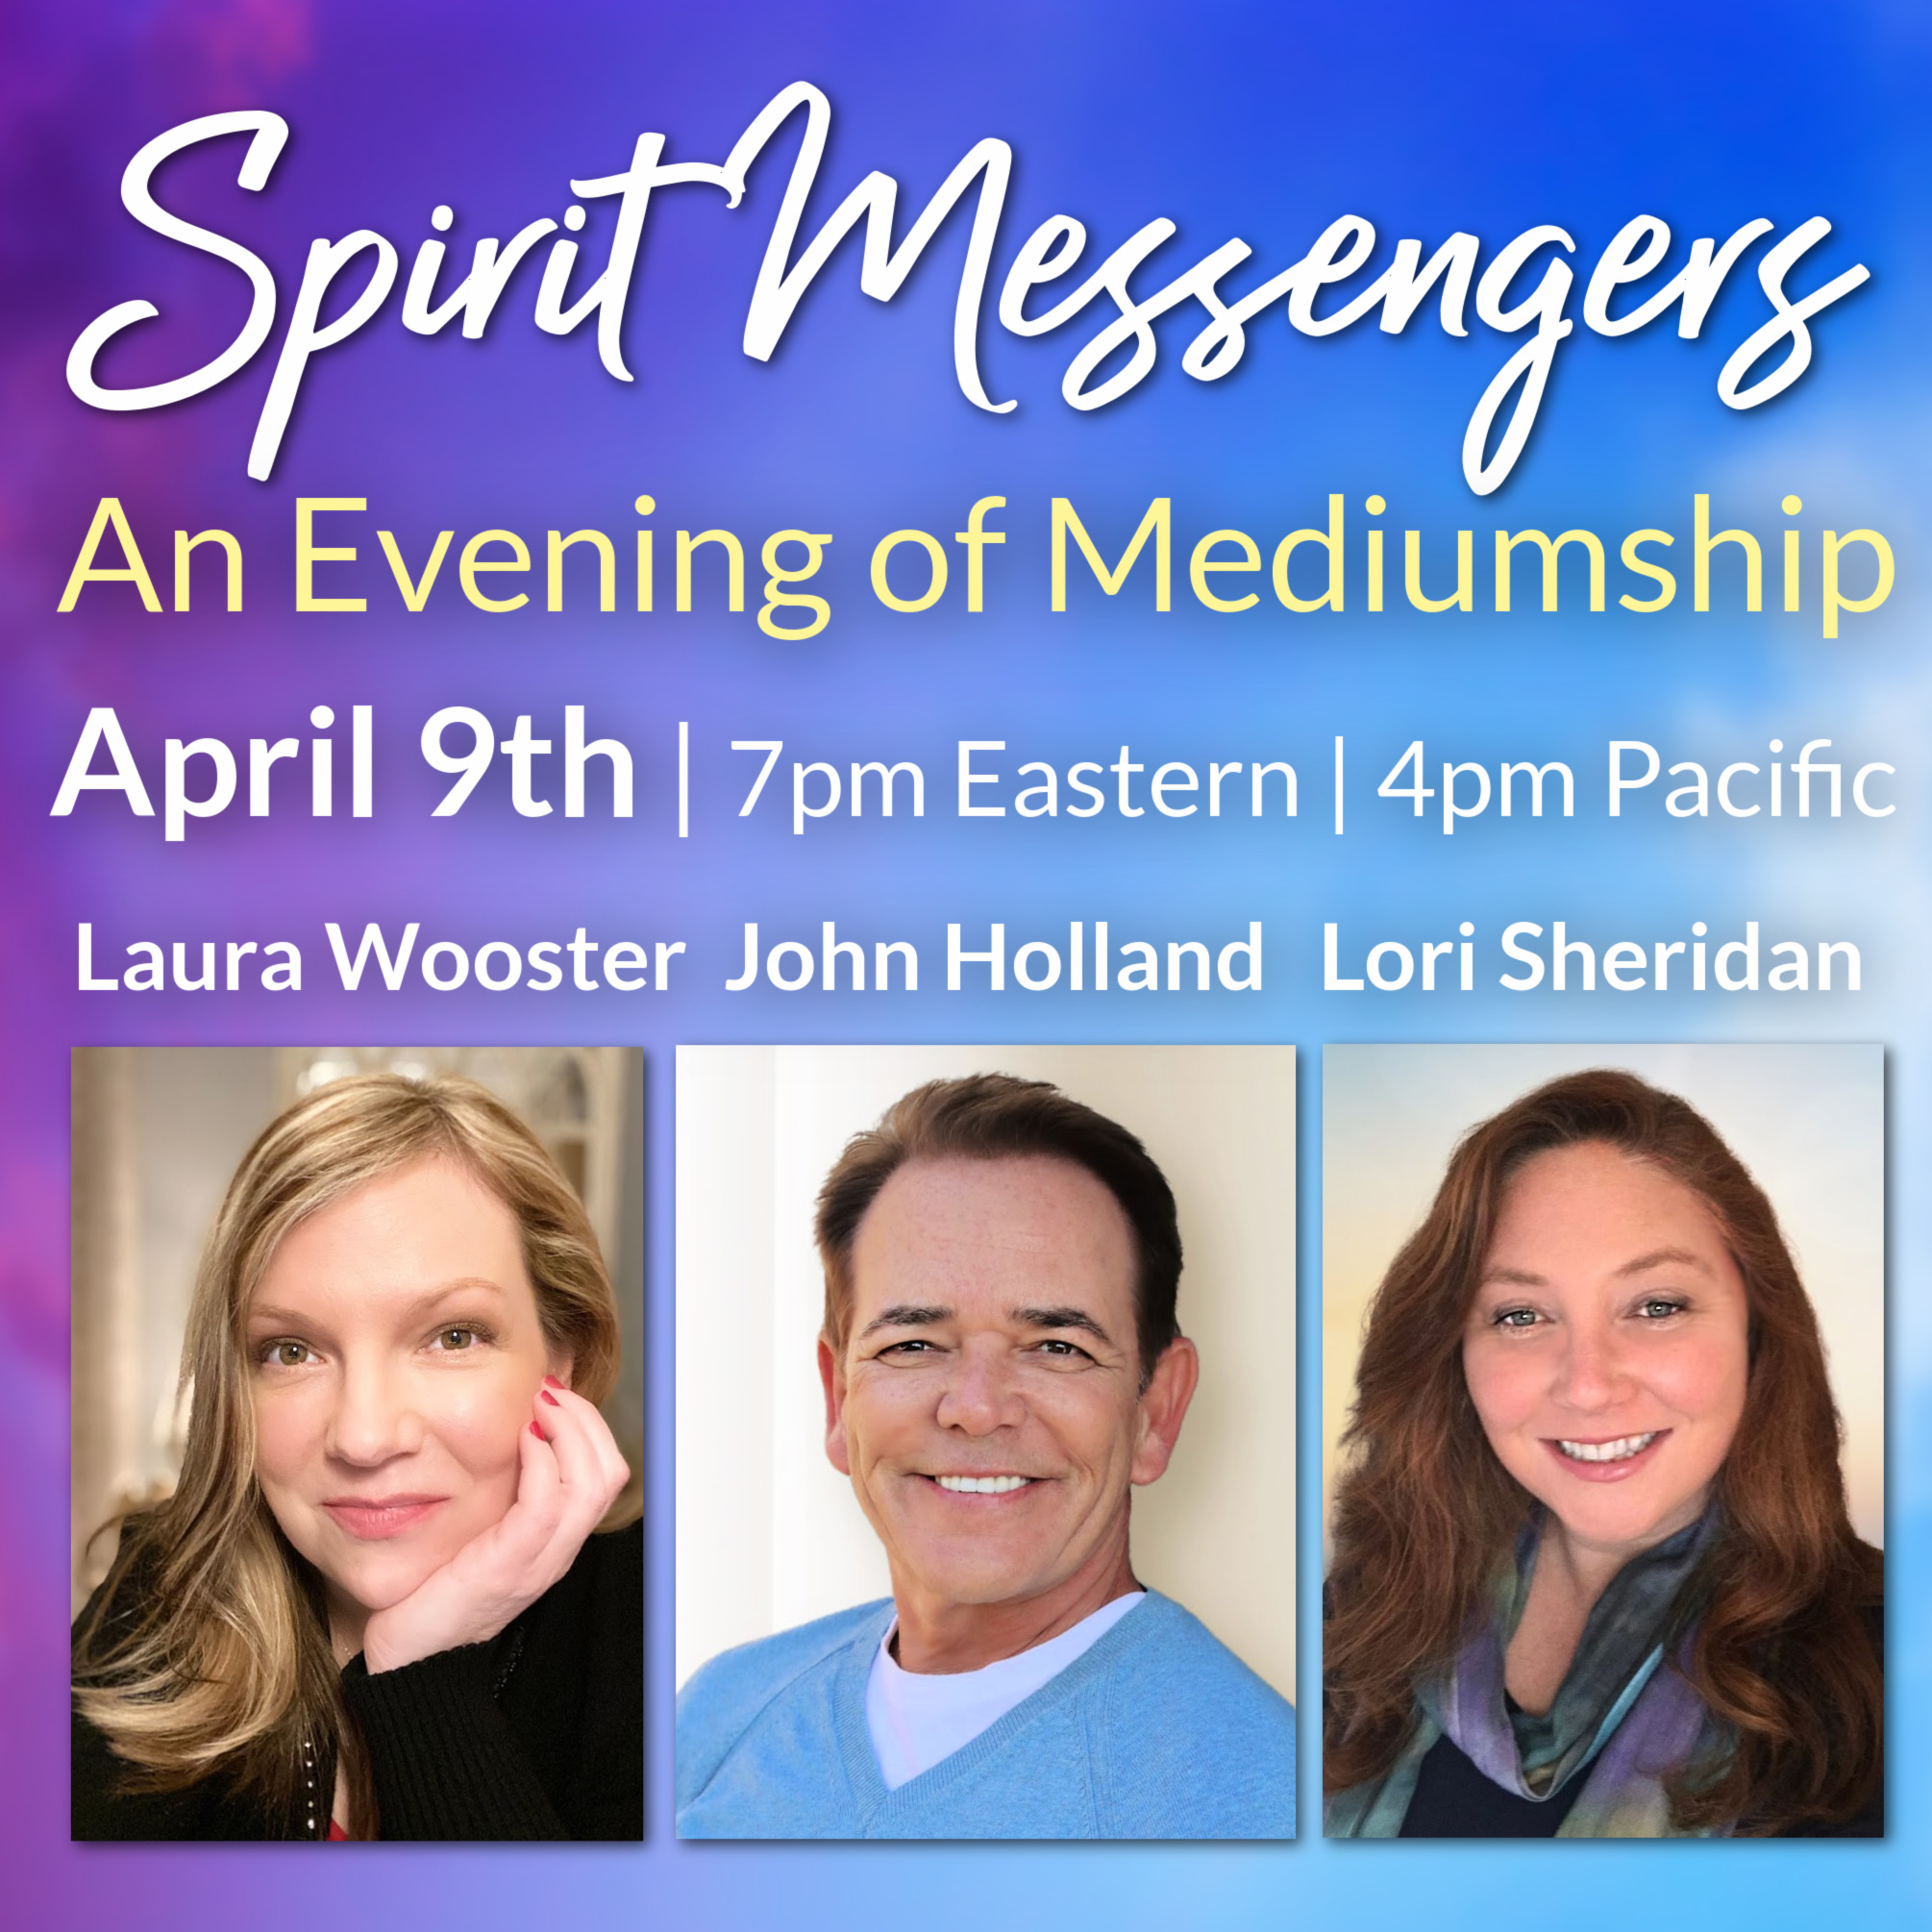 Spirit Messengers: An Evening of Mediumship with John Holland, Laura Wooster & Lori Sheridan